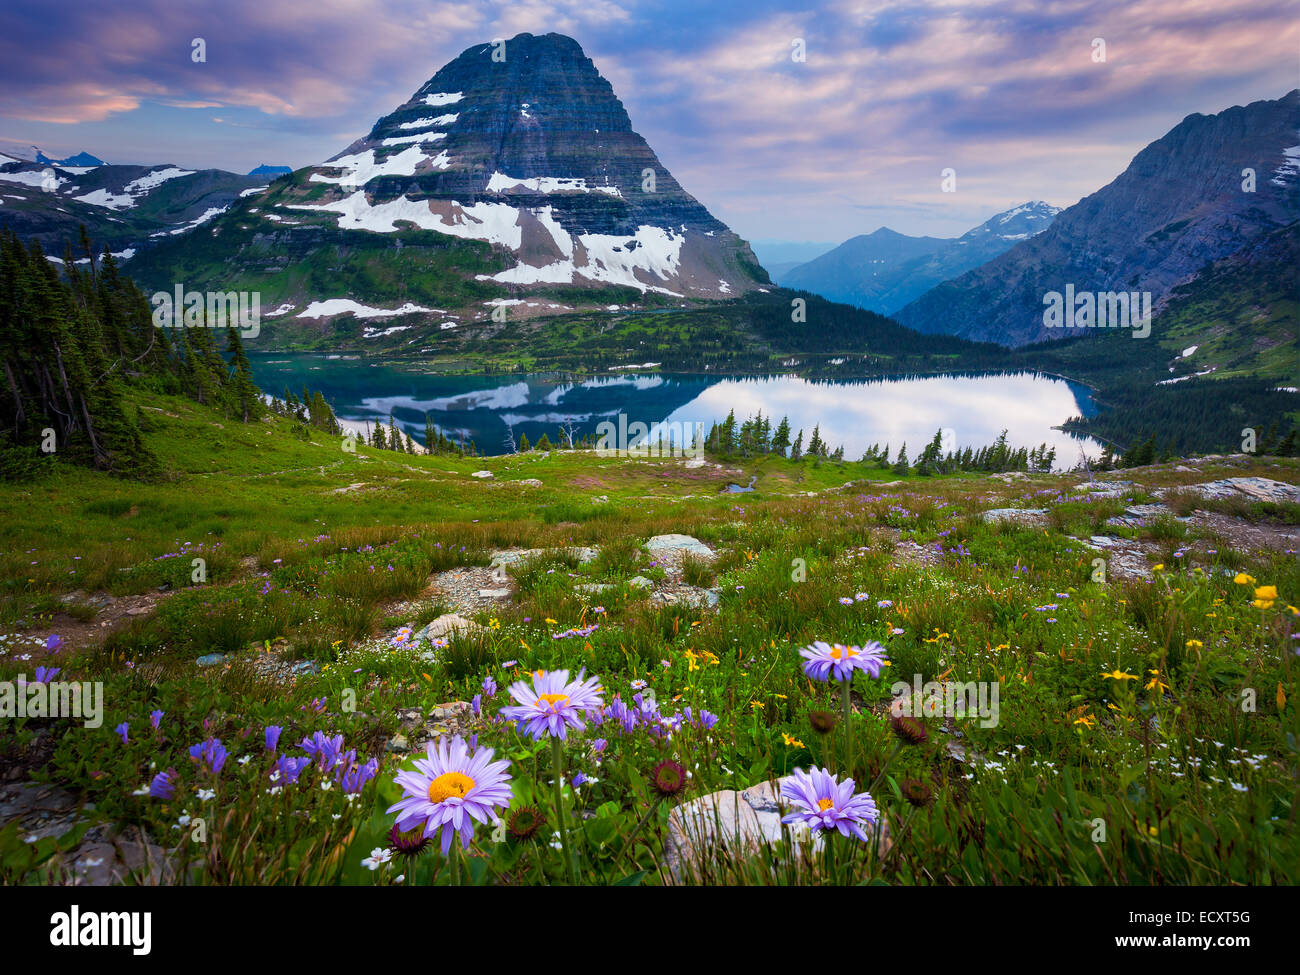 Hidden Lake is located in Glacier National Park, in the U. S. state of Montana. Stock Photo